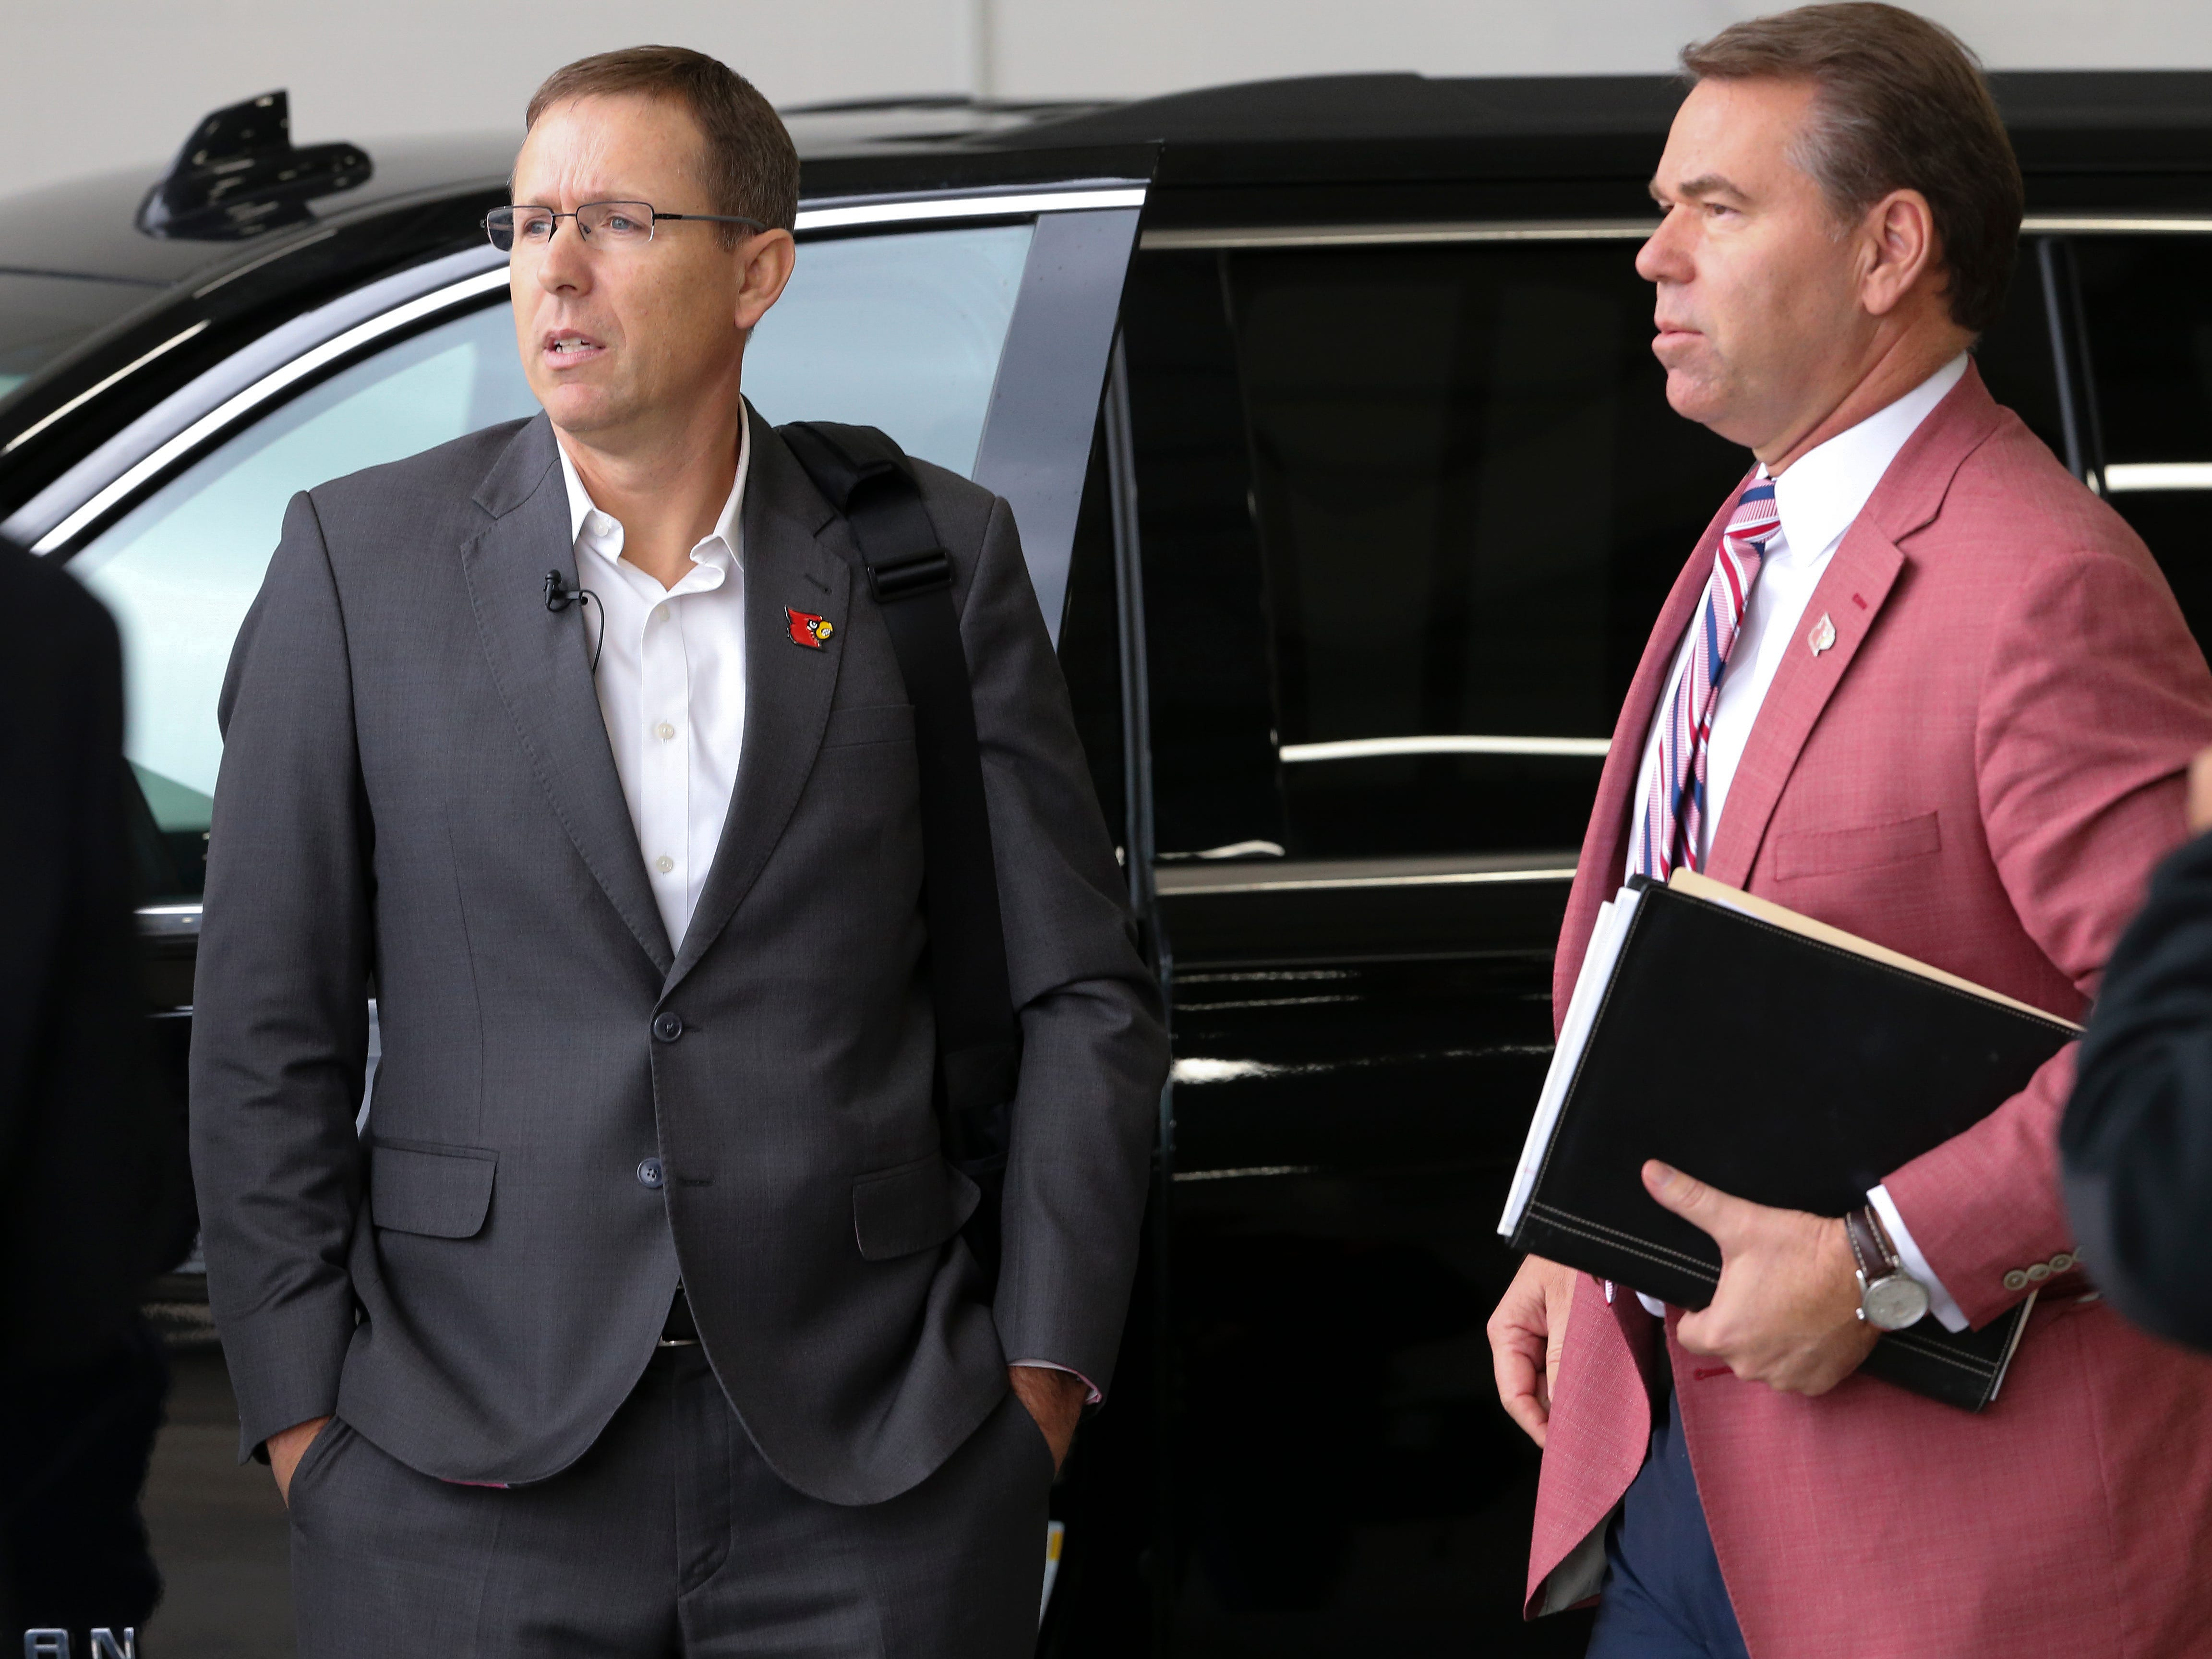 Appalachian State head football coach Scott Satterfield, left, waits inside an airport hangar with U of L athletic director Vince Tyra after exiting a private plane in Louisville.  Satterfield expects to be named the new head football coach at U of L.  Dec. 4, 2018